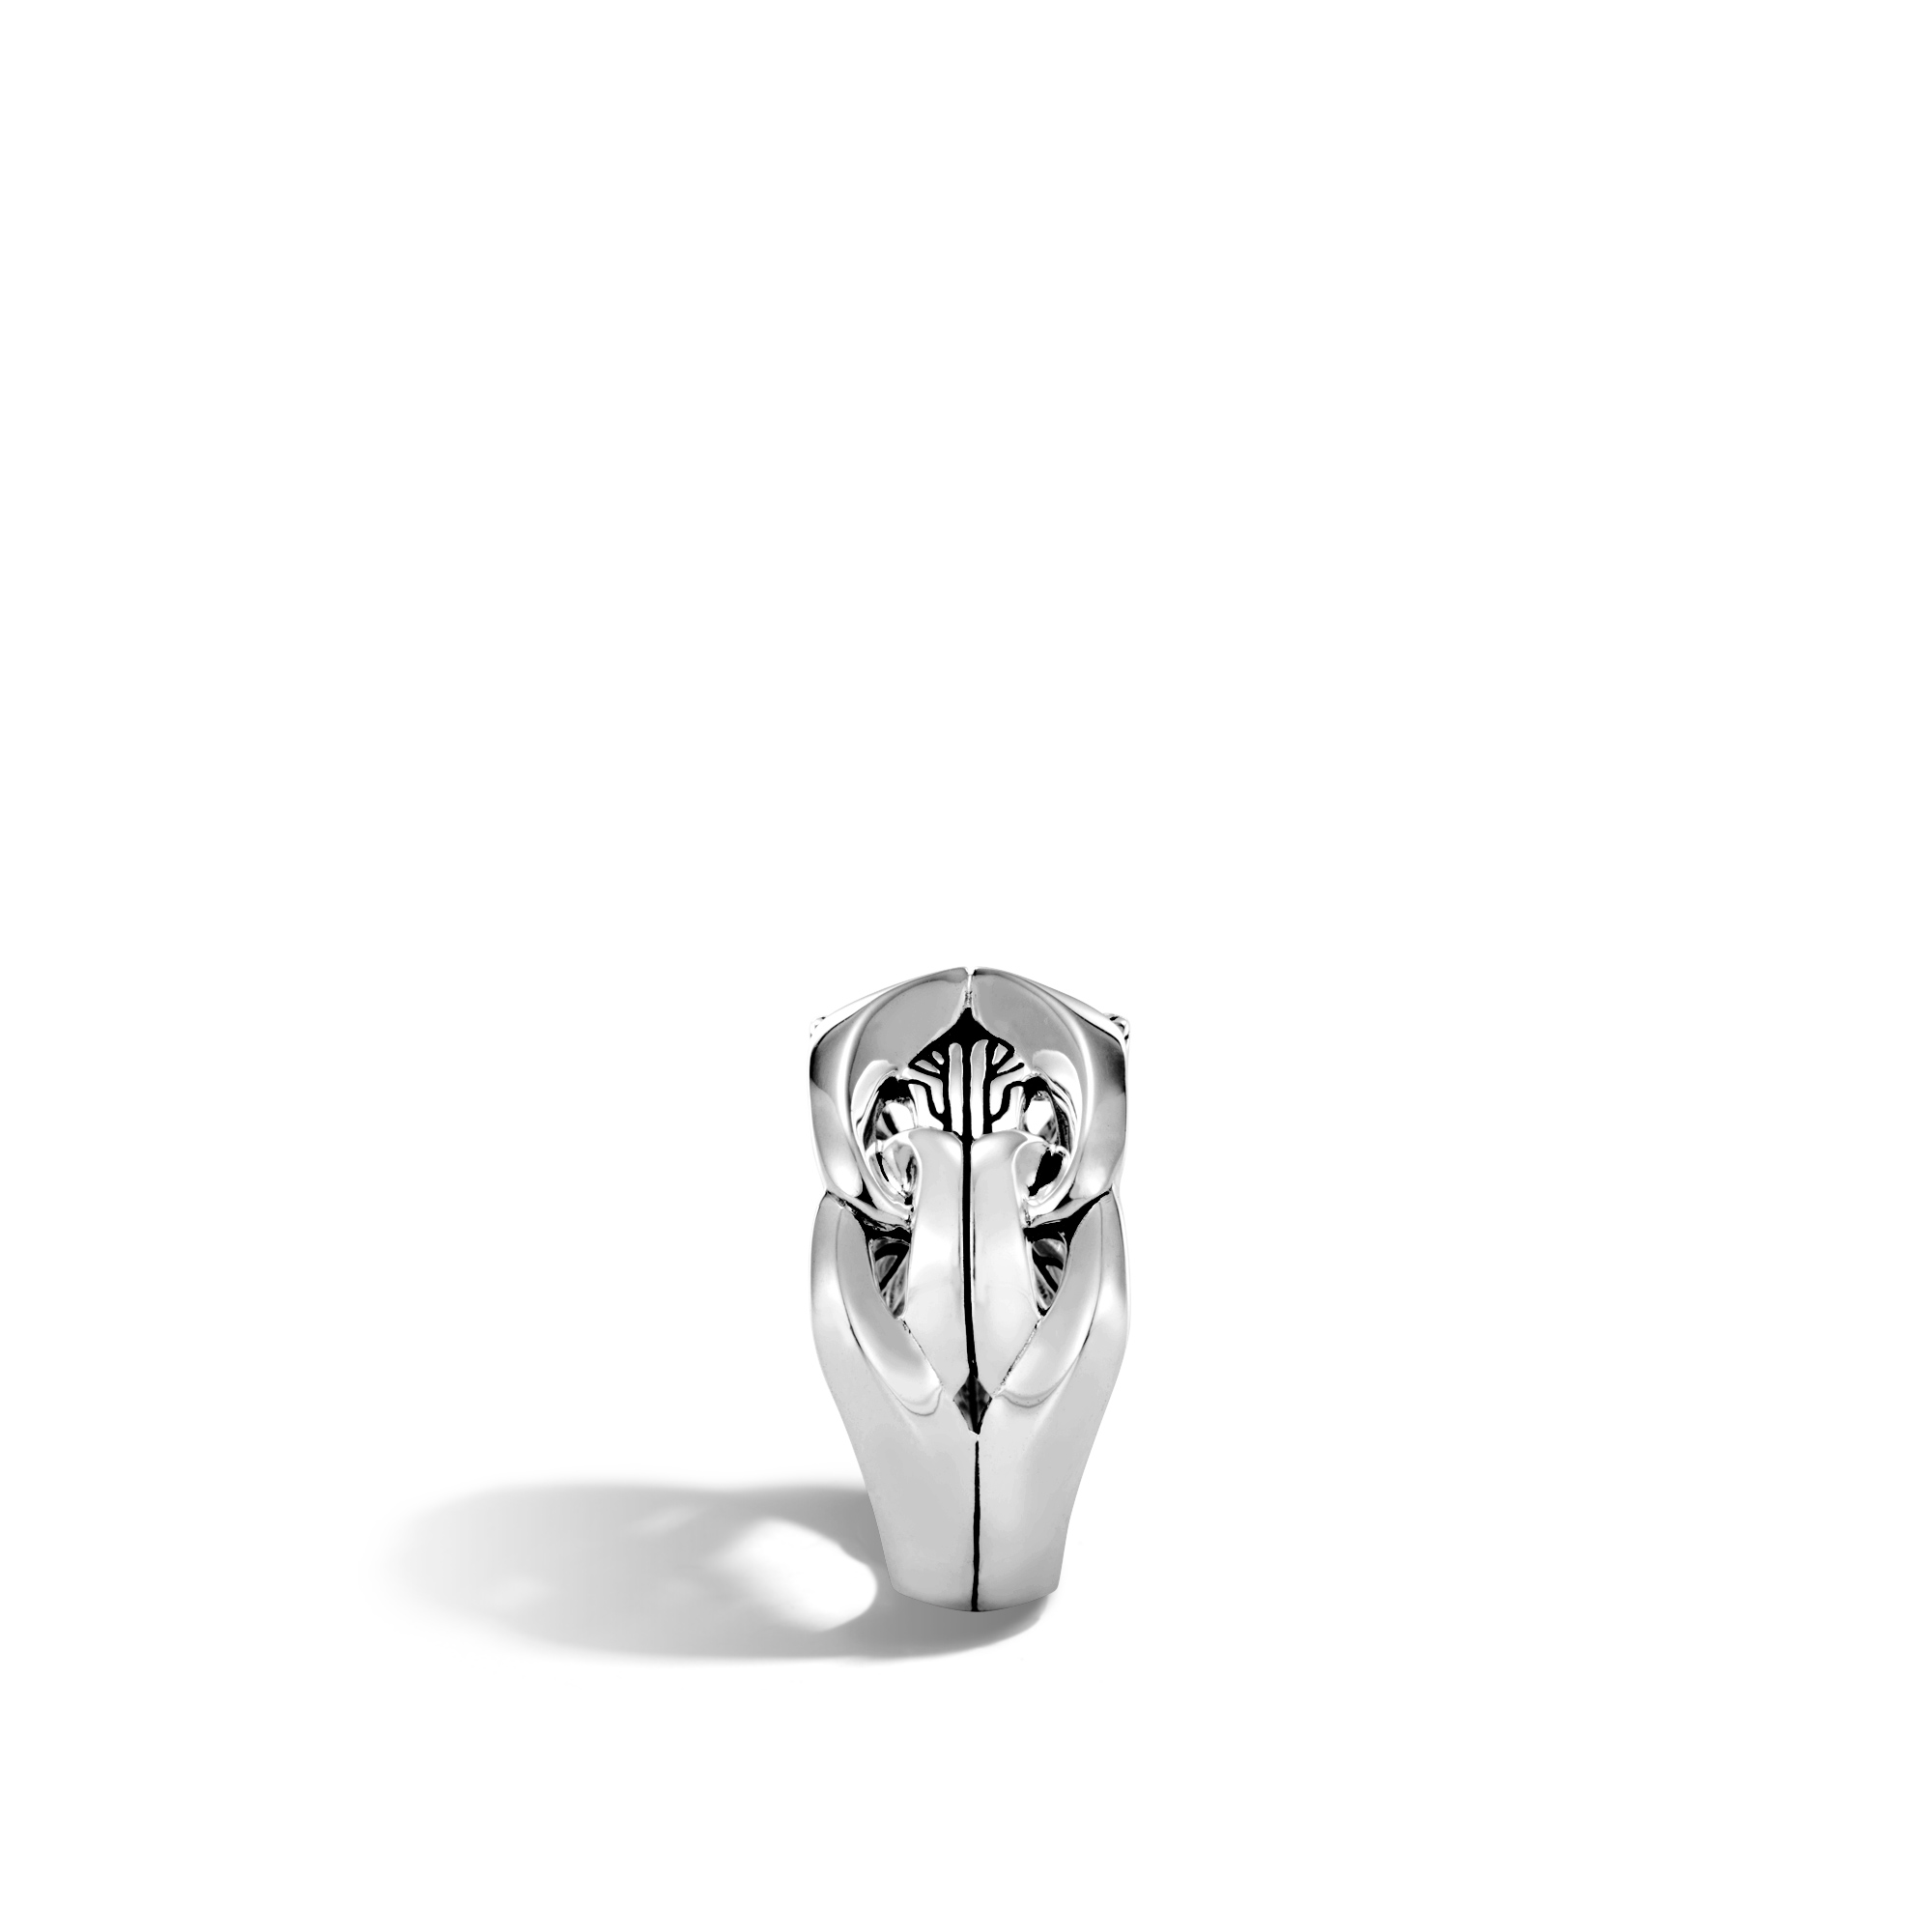 Asli Classic Chain Link 13MM Band Ring in Silver, , large